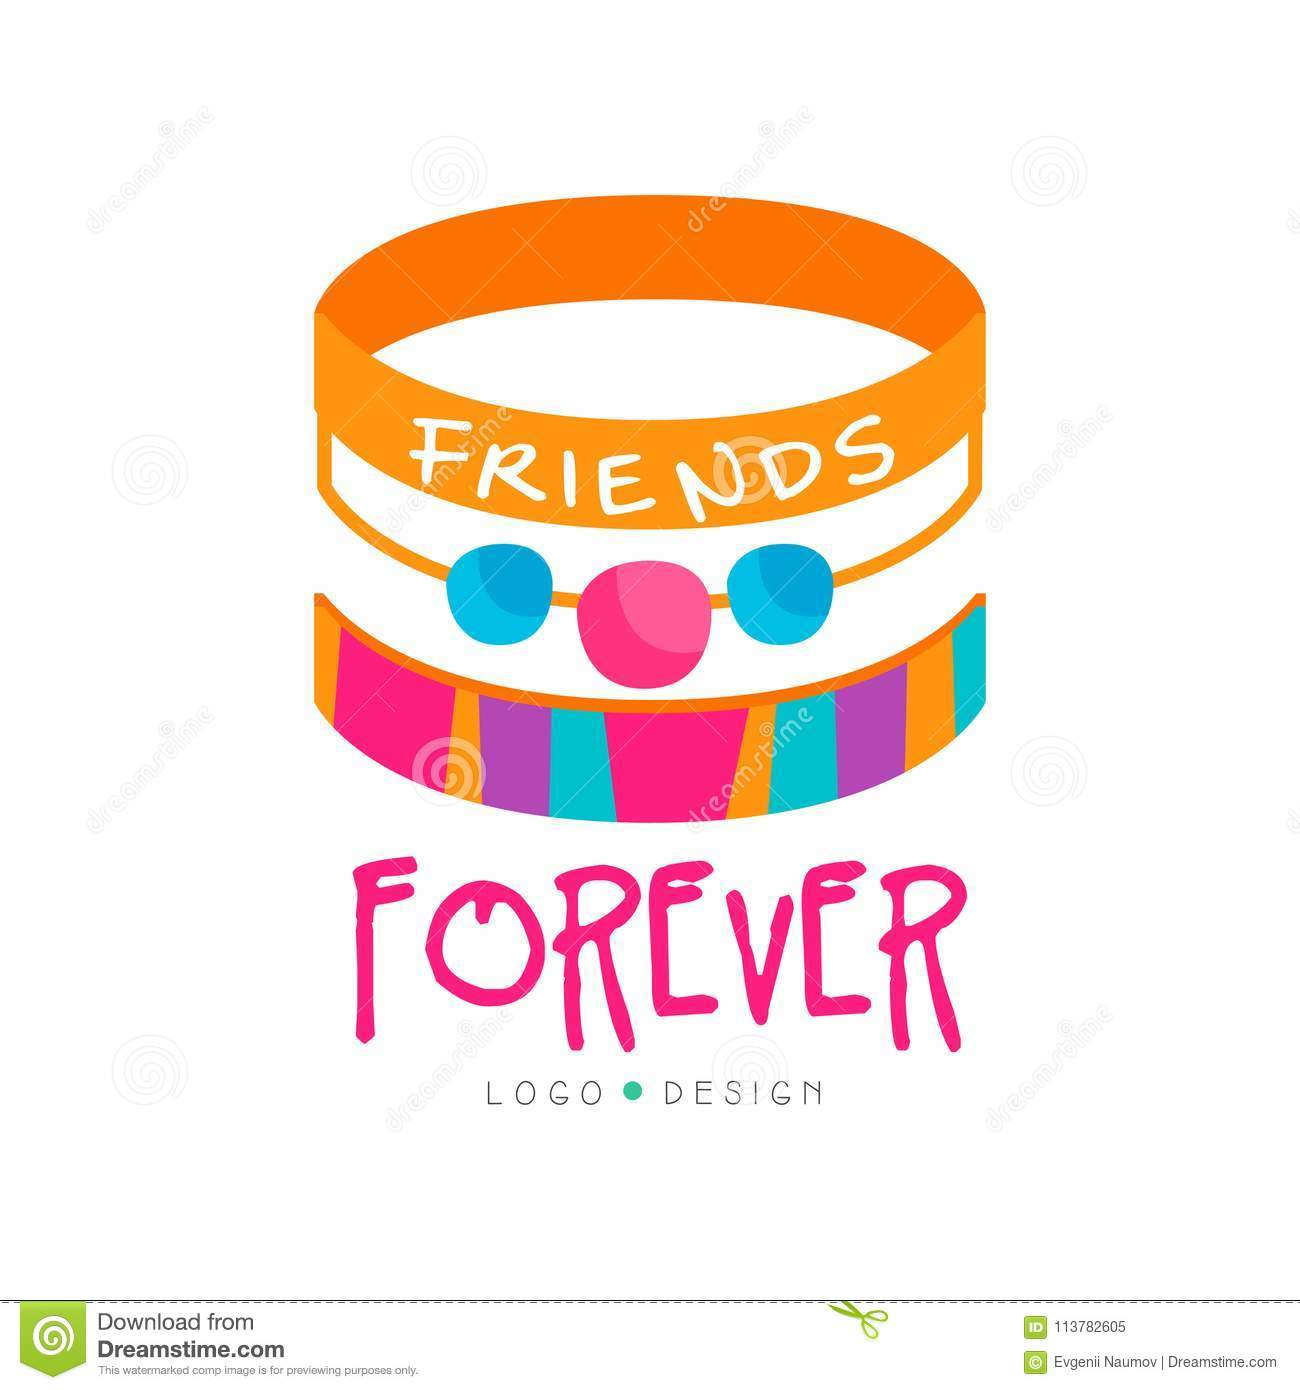 Abstract vector design with friendship bracelets friends forever download abstract vector design with friendship bracelets friends forever colorful graphic element for greeting m4hsunfo